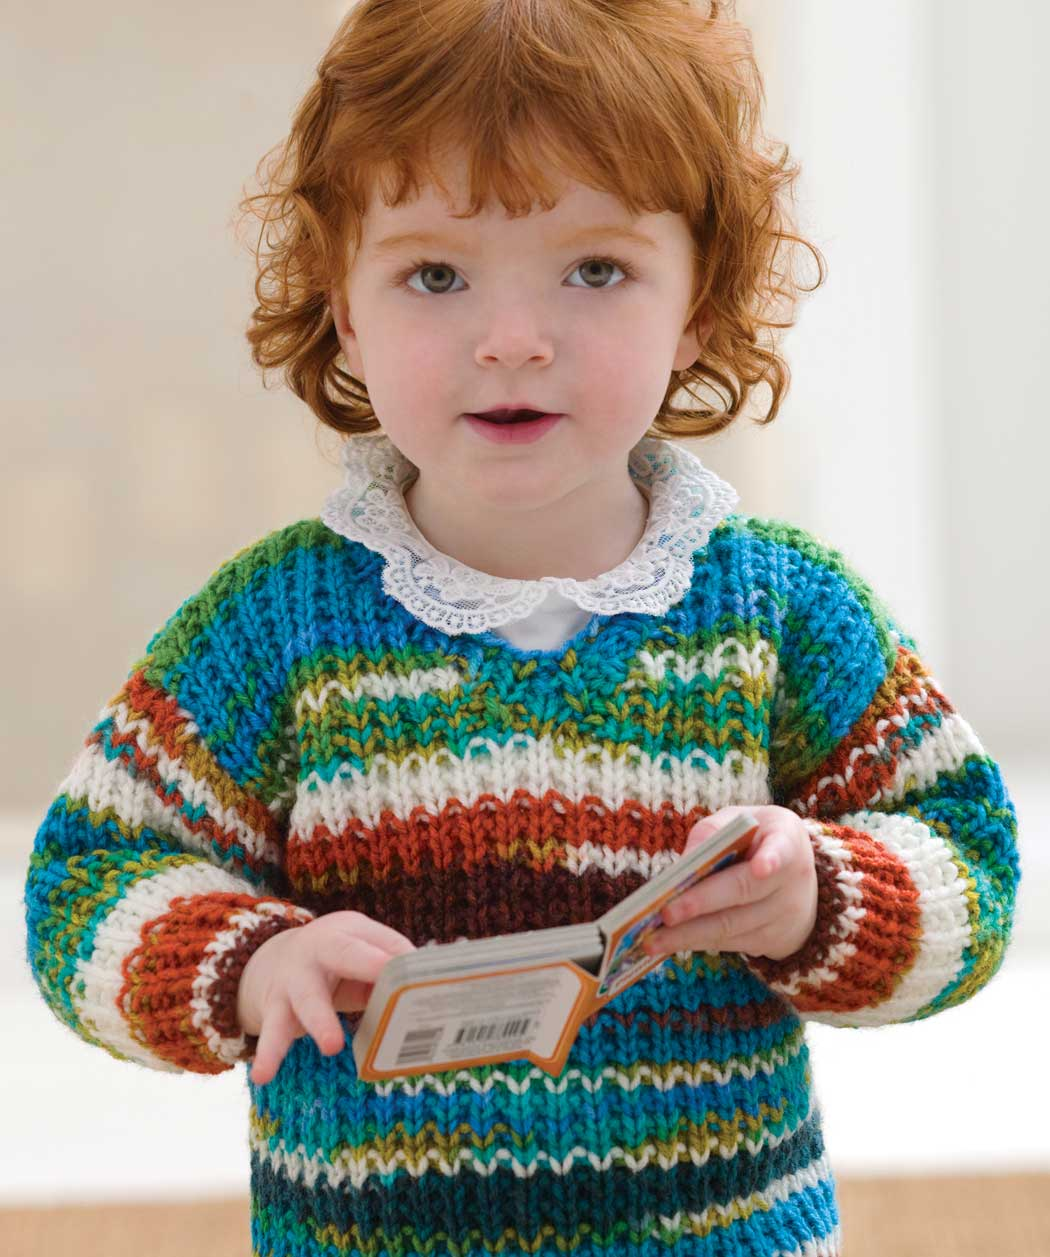 Knitting Sweater Designs For Baby : Chunky knit sweater patterns a knitting